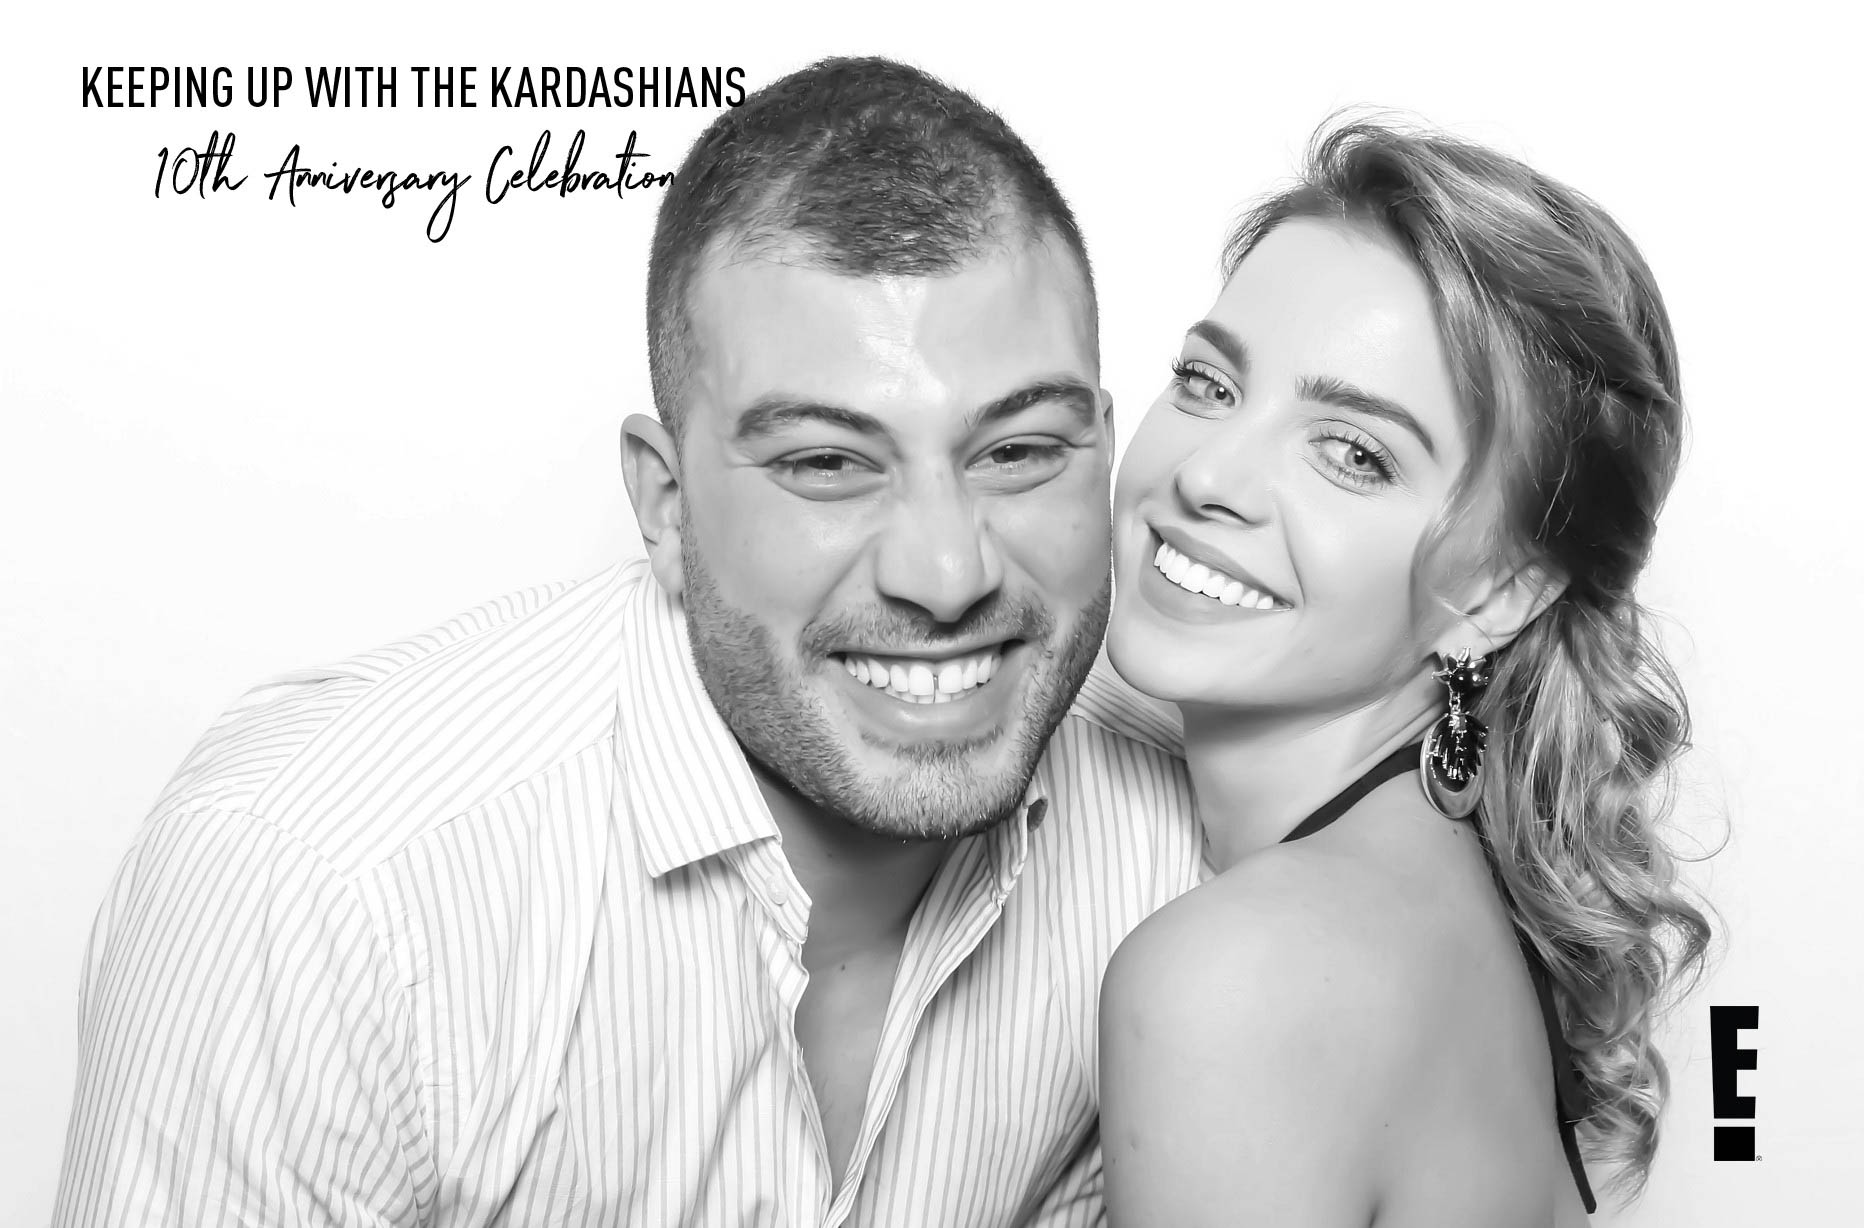 Copy of Keeping Up With The Kardashians Photo Booth - Olena Khamula